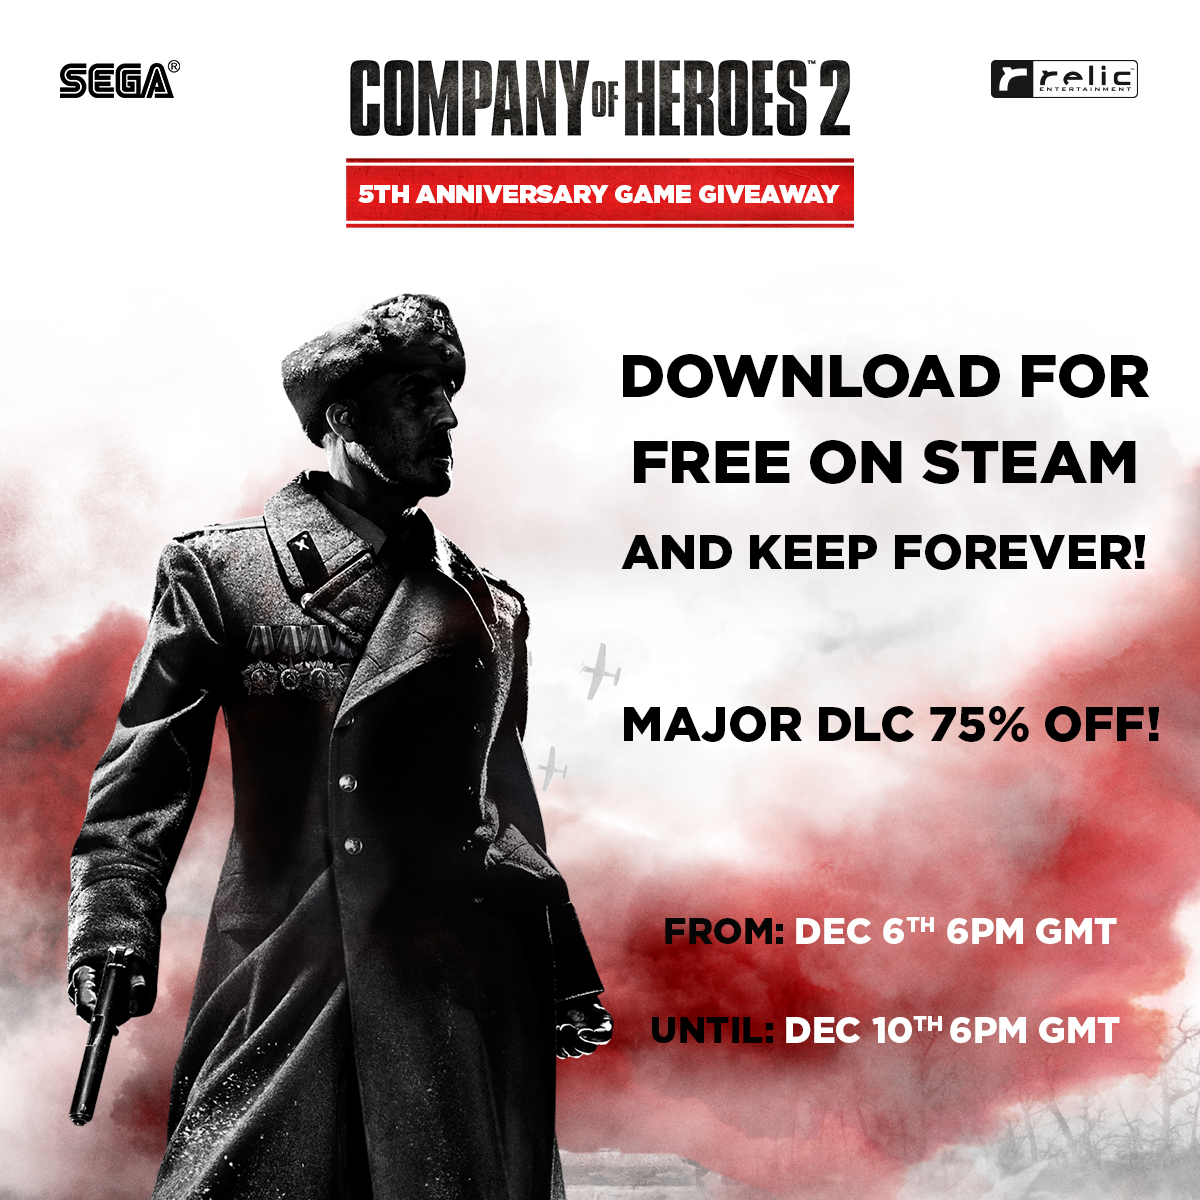 Company of Heroes 2 Game Giveaway, Sale and Tourney Finals